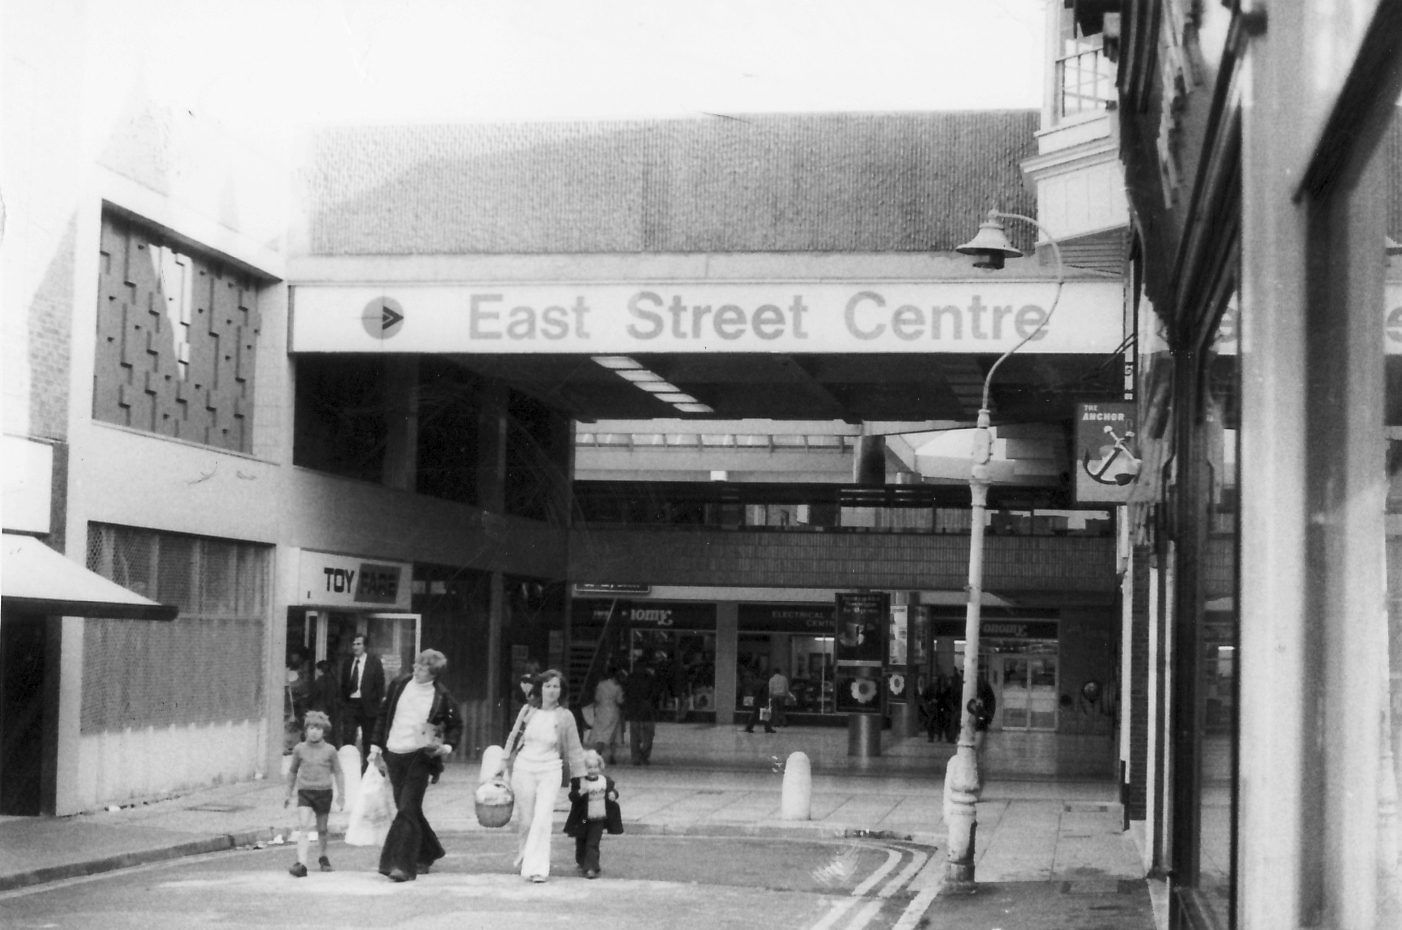 East Street Centre. November 1976. Southern Daily Echo Archives.